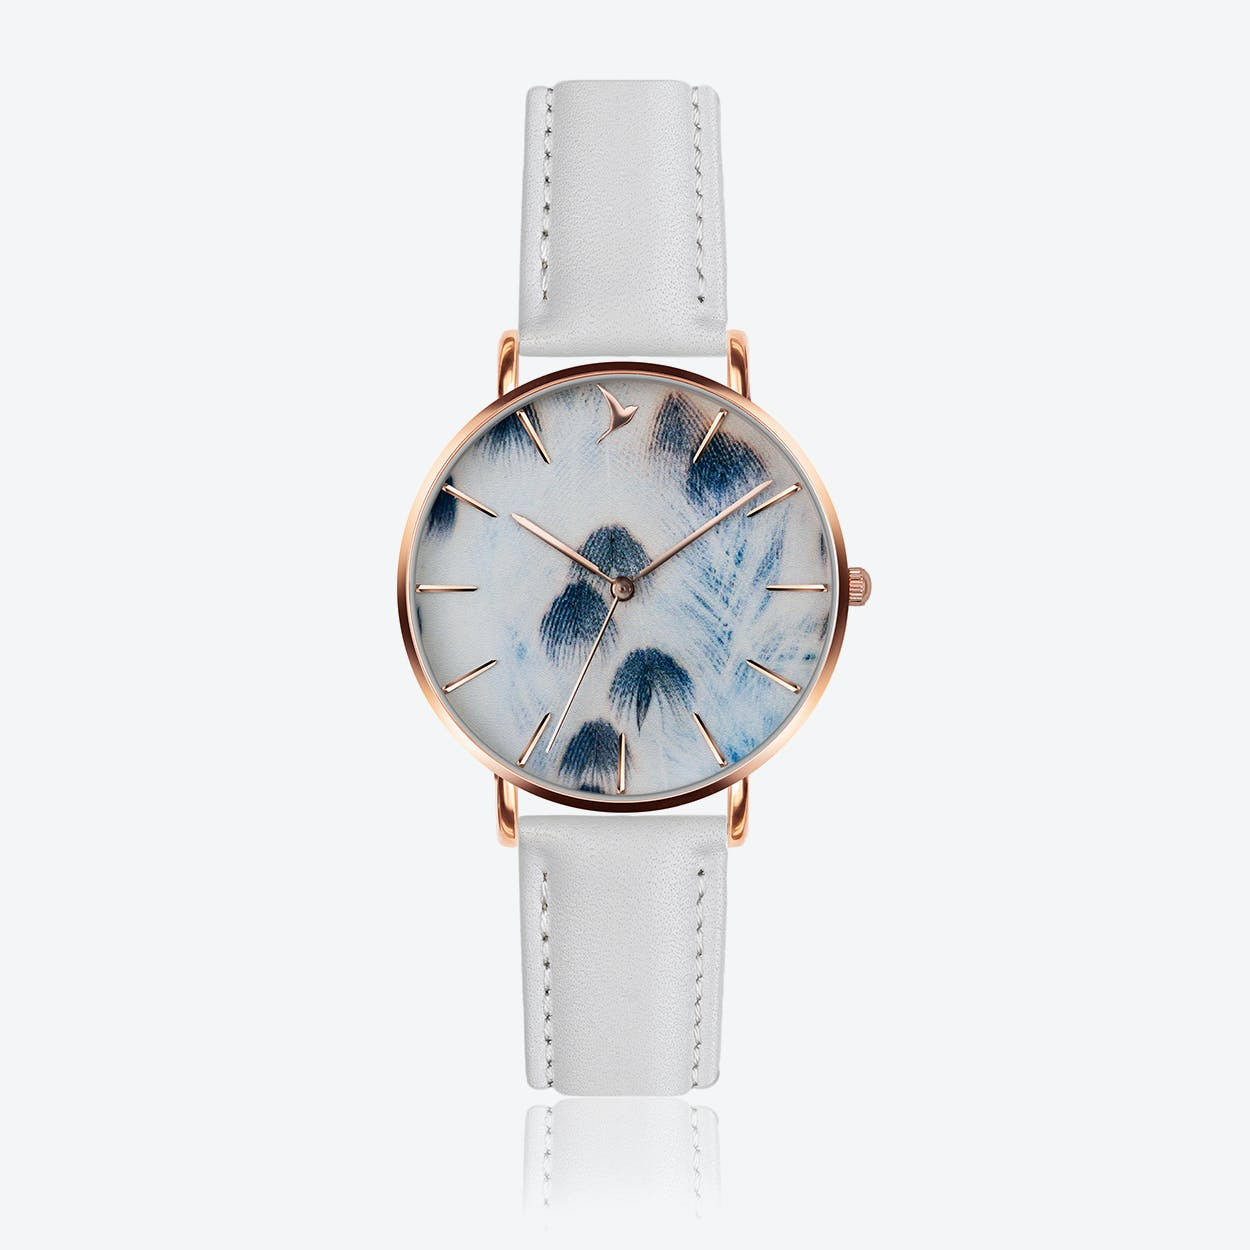 Feather Print Watch in White Leather/ Rose Gold Case ⌀38